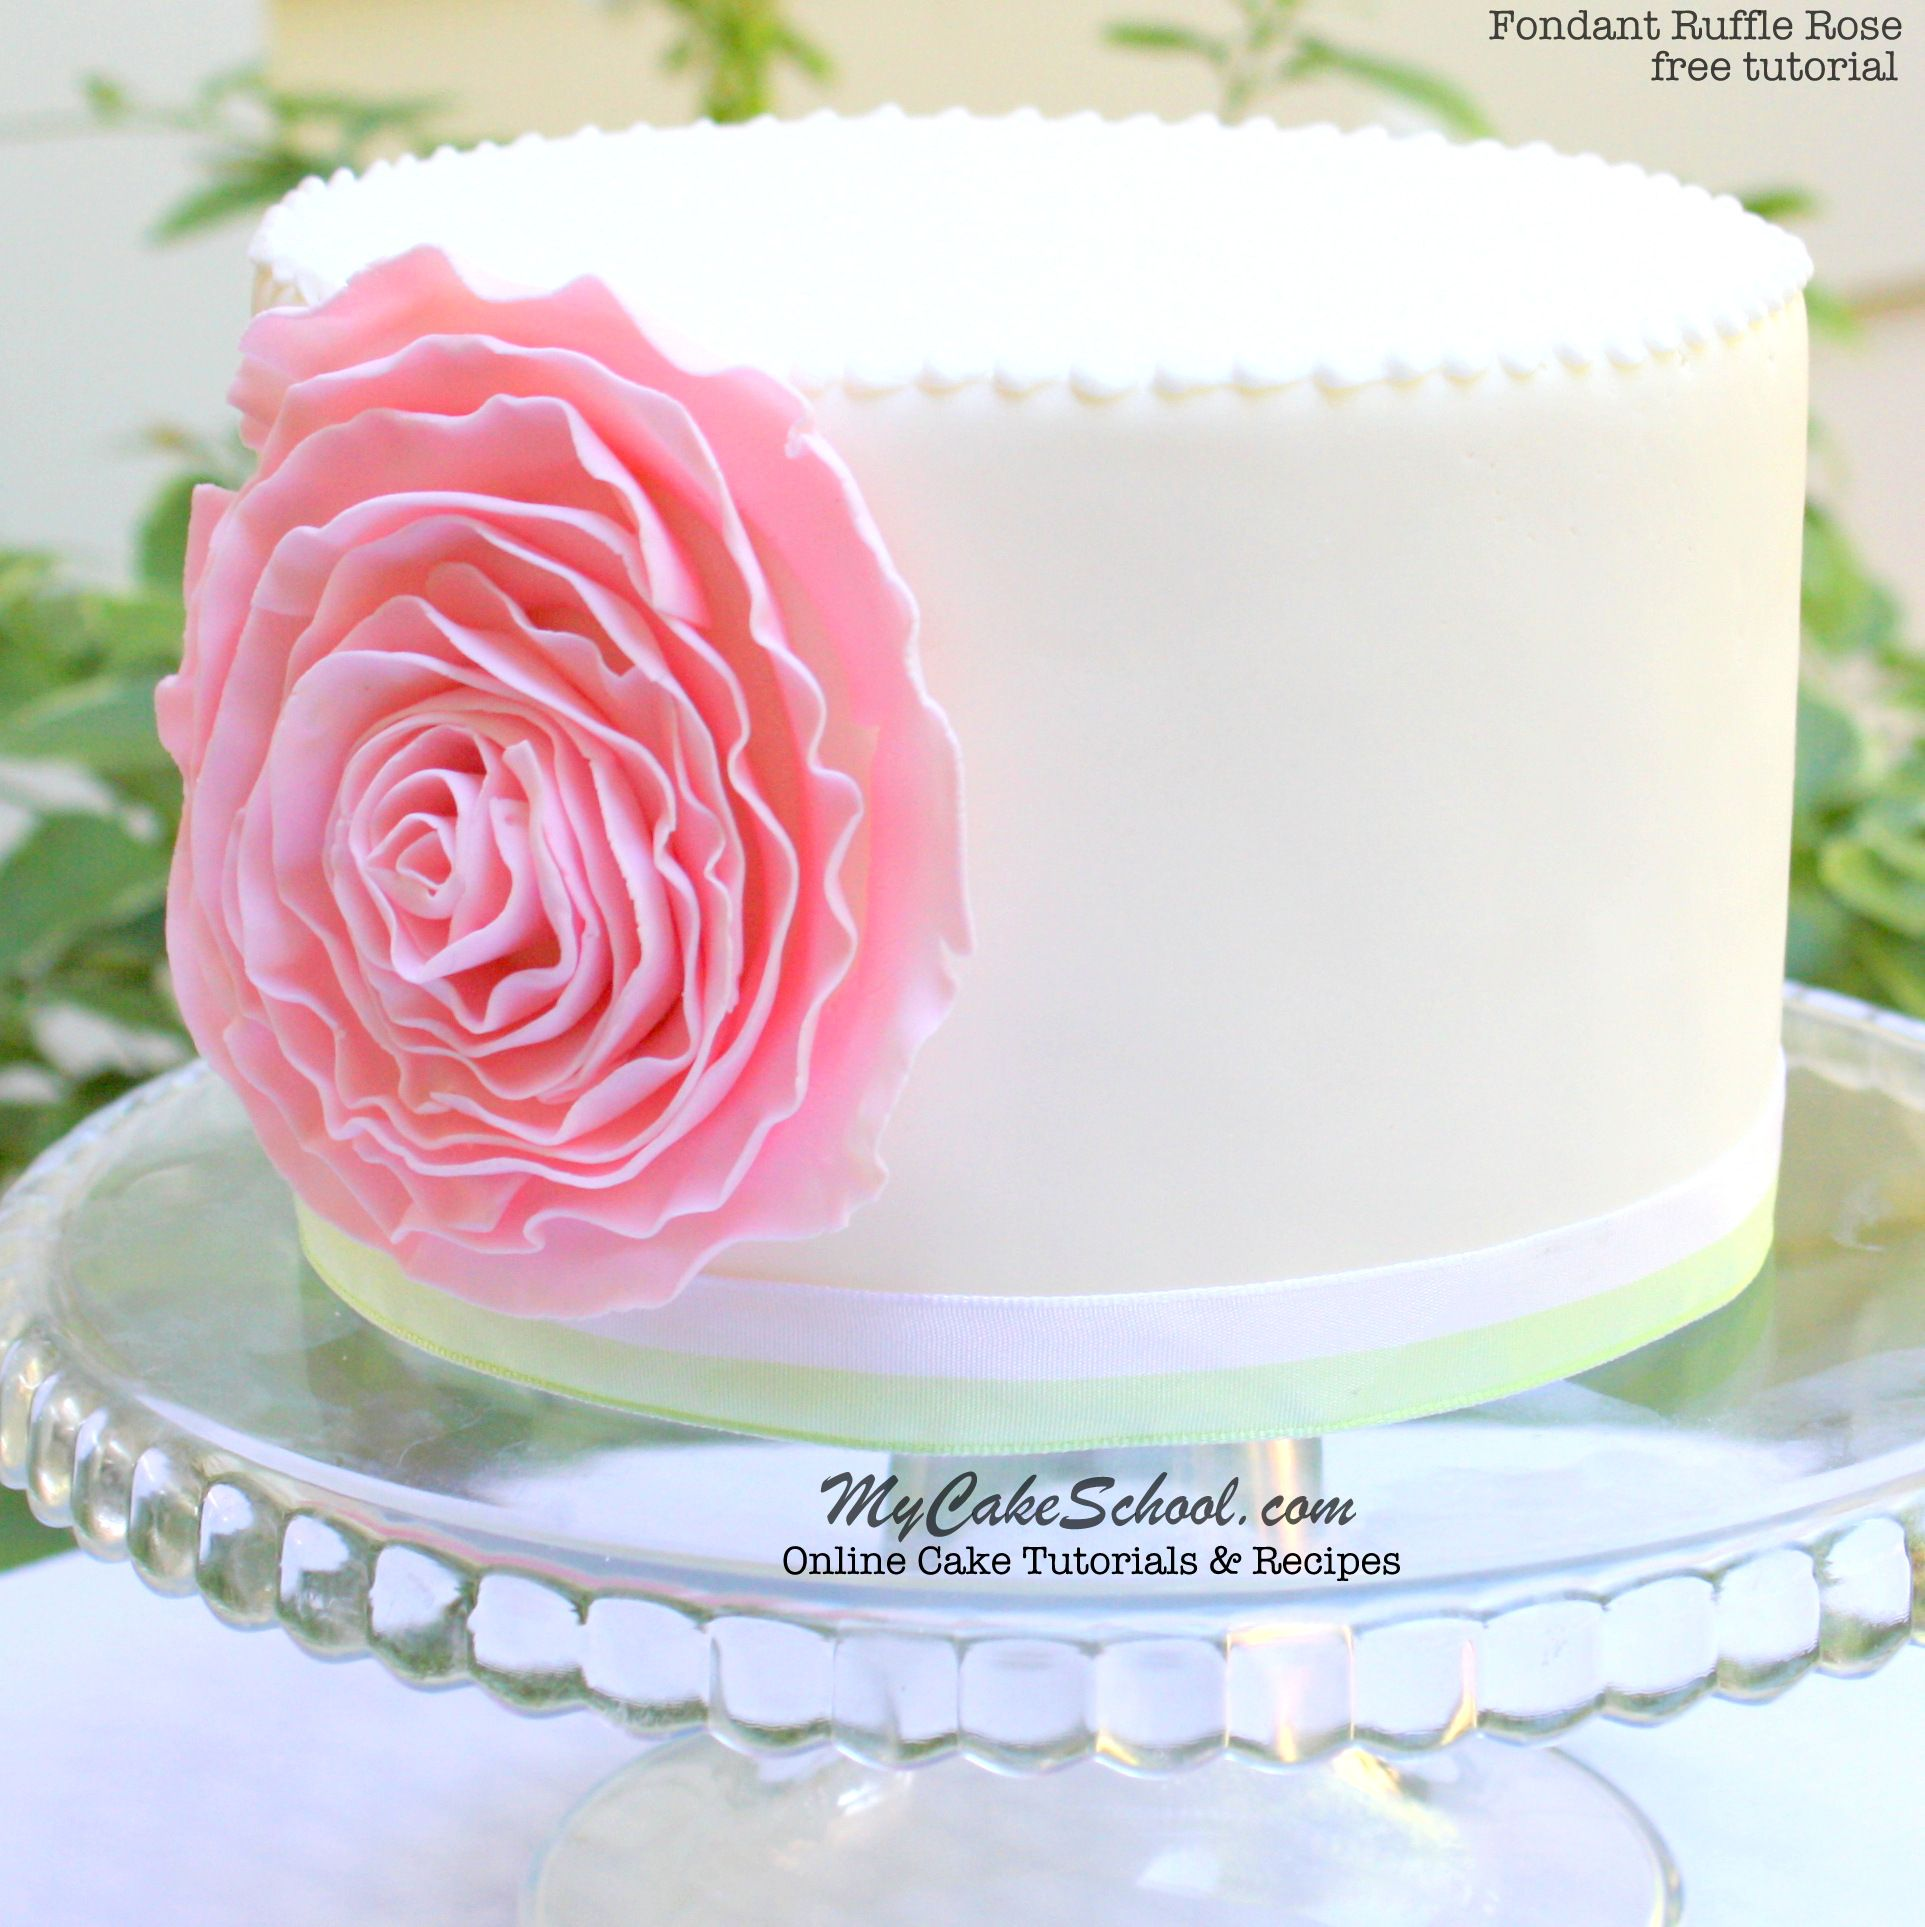 How To Make A Fondant Ruffle Rose Free Cake Tutorial Rose Cake Tutorial Fondant Ruffles Cake Tutorial